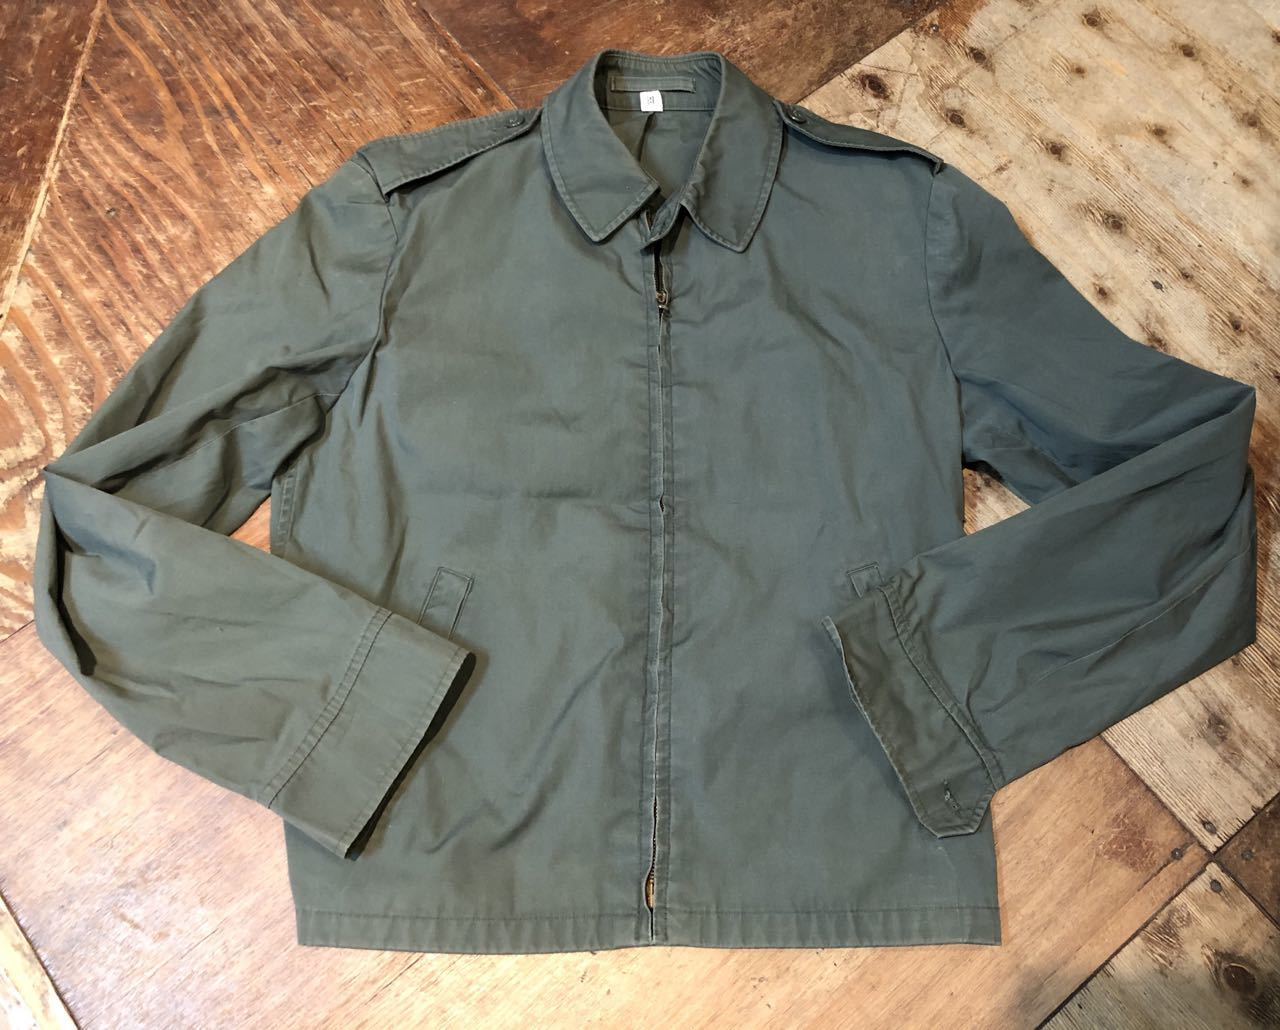 2月6日(木)入荷!60s BLAUER WEATHER RESISTANT JACKET !チンスト付き_c0144020_13202126.jpg